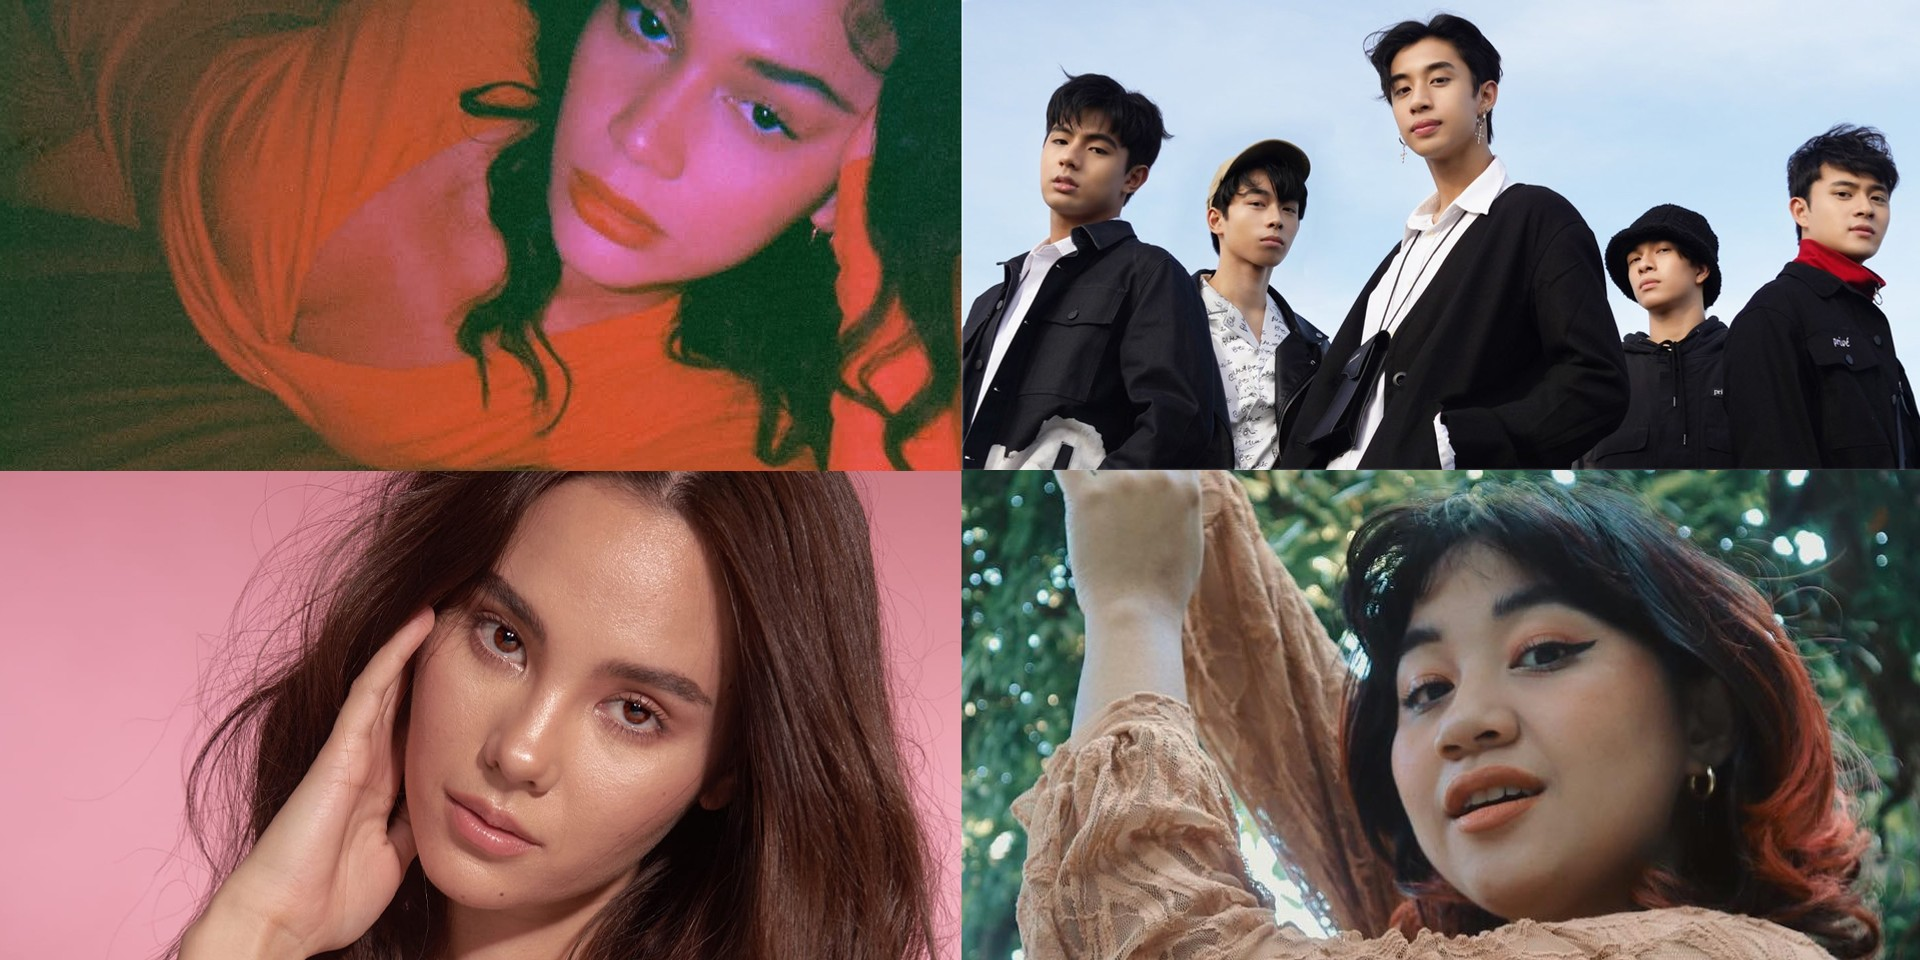 Jess Connelly, BGYO, Catriona Gray, Coeli, and more release new music – listen